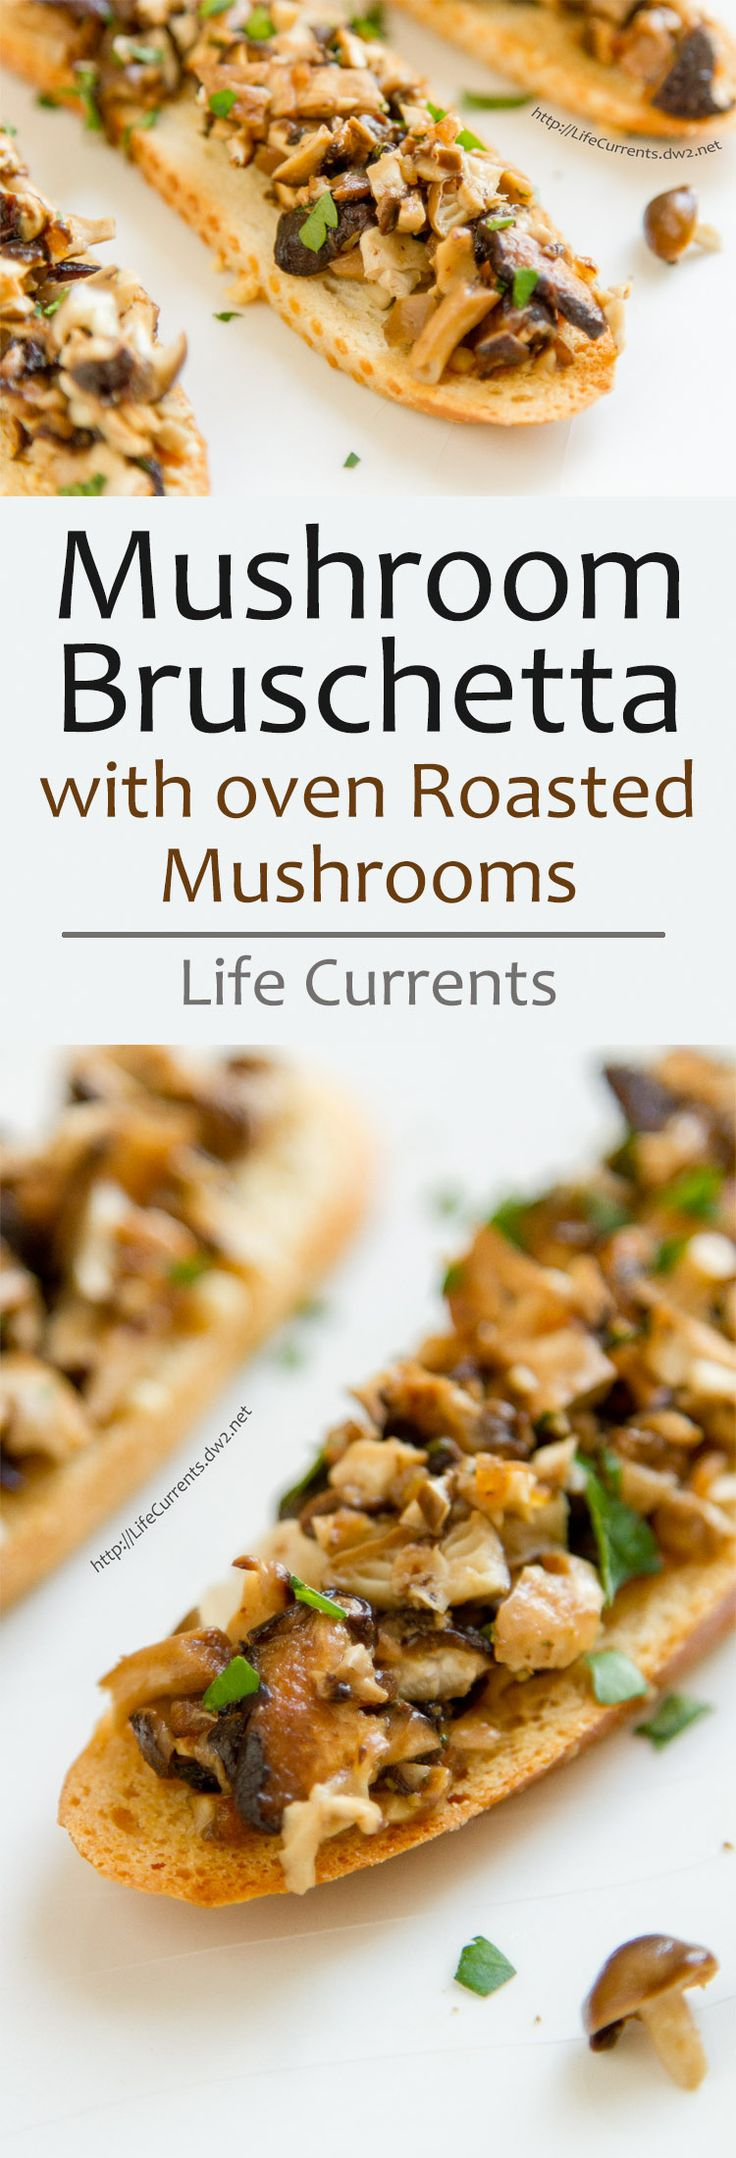 Mushroom Bruschetta is a super tasty and easy to make appetizer that's sure to please any mushroom lover!